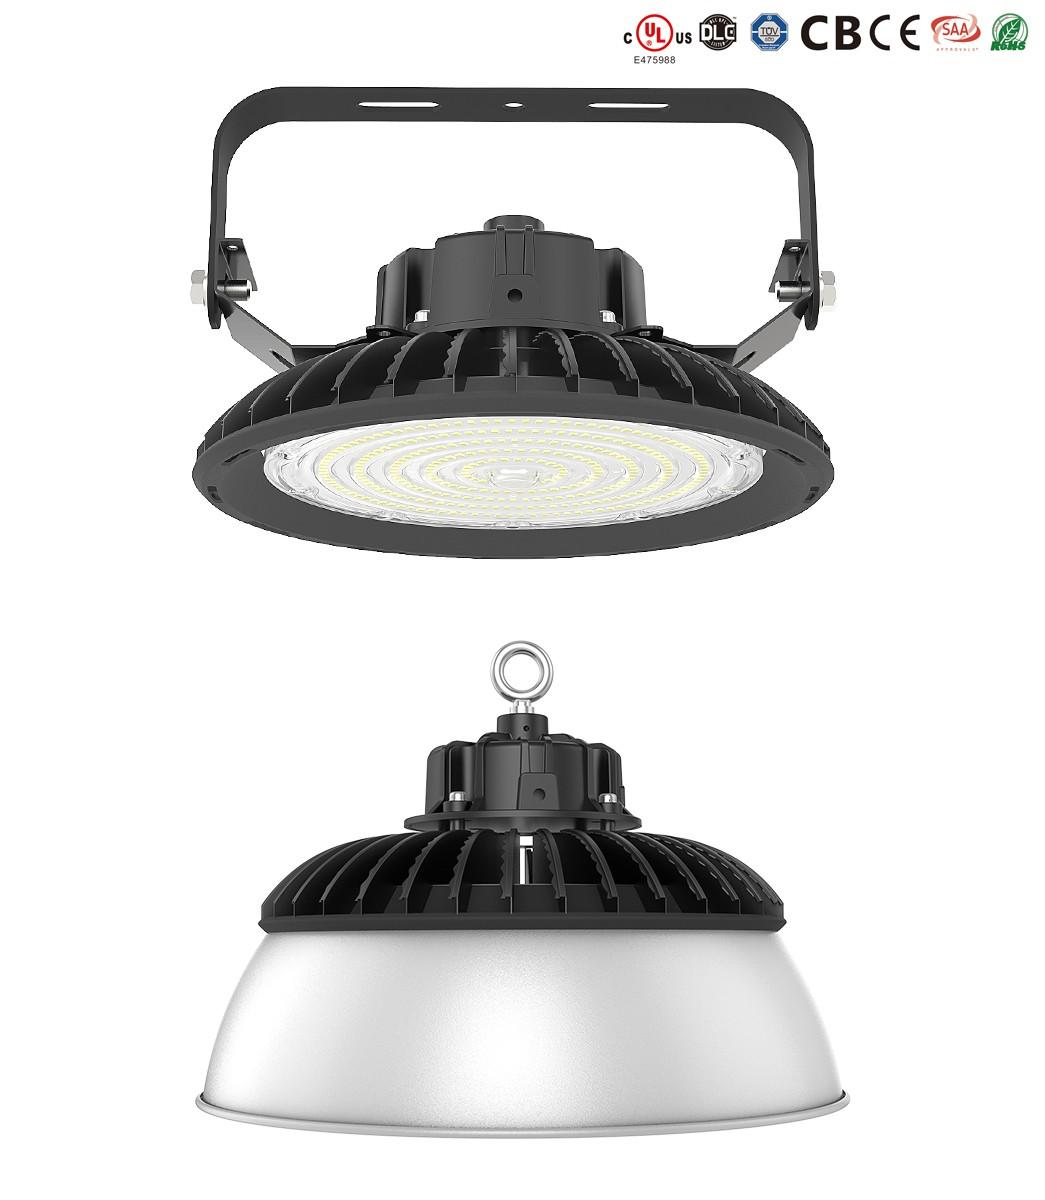 SEEKING bay high bay metal halide light fixtures for business for warehouses